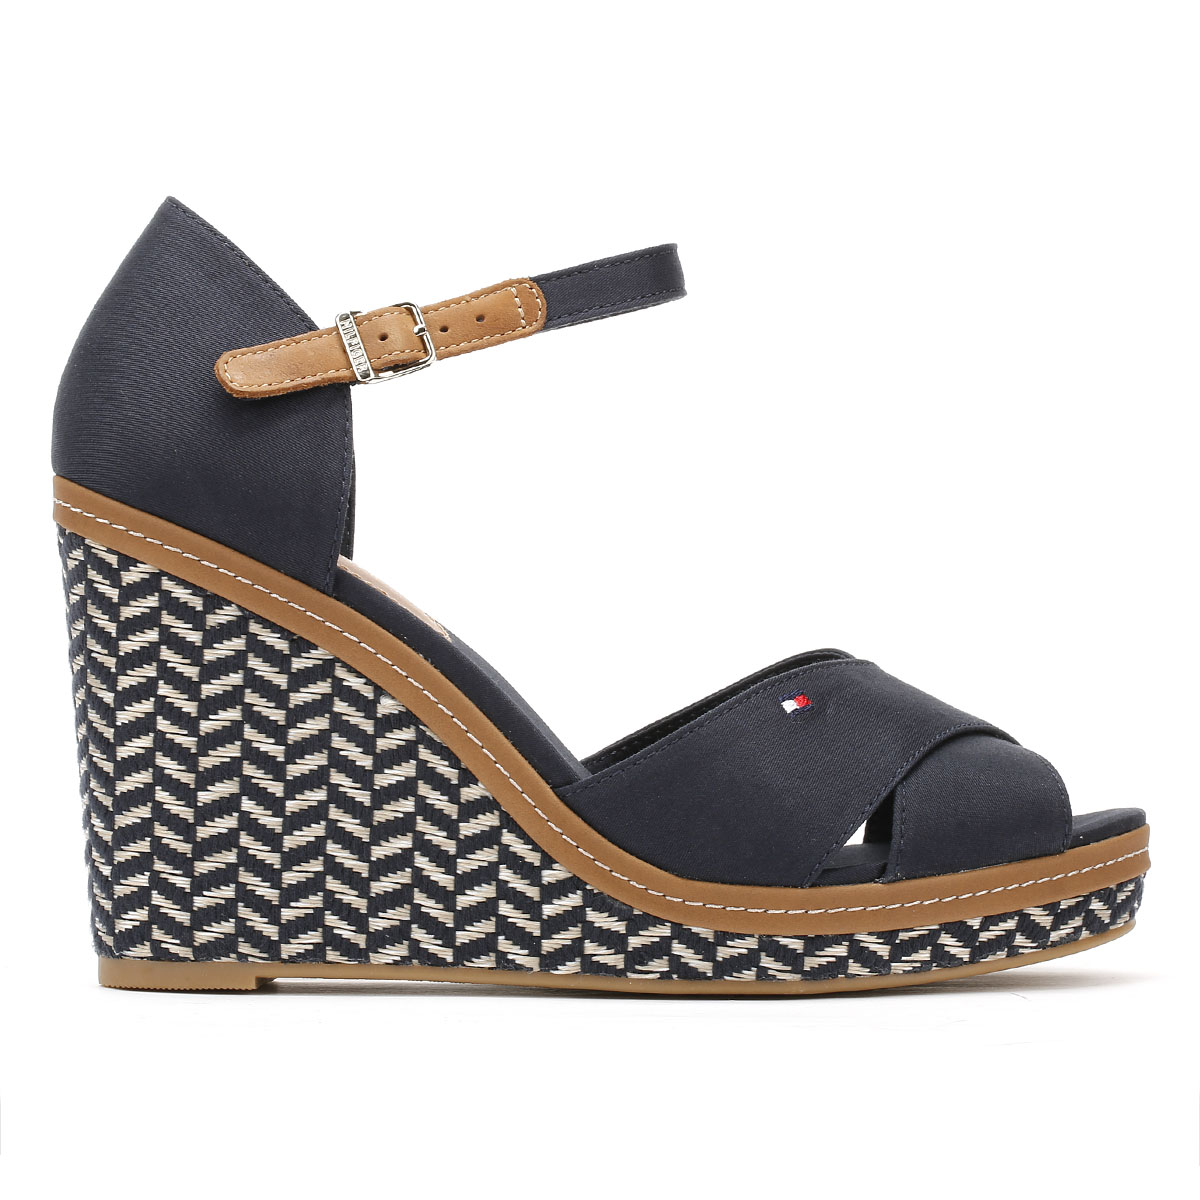 Tommy Hilfiger Shoes Womens Canada